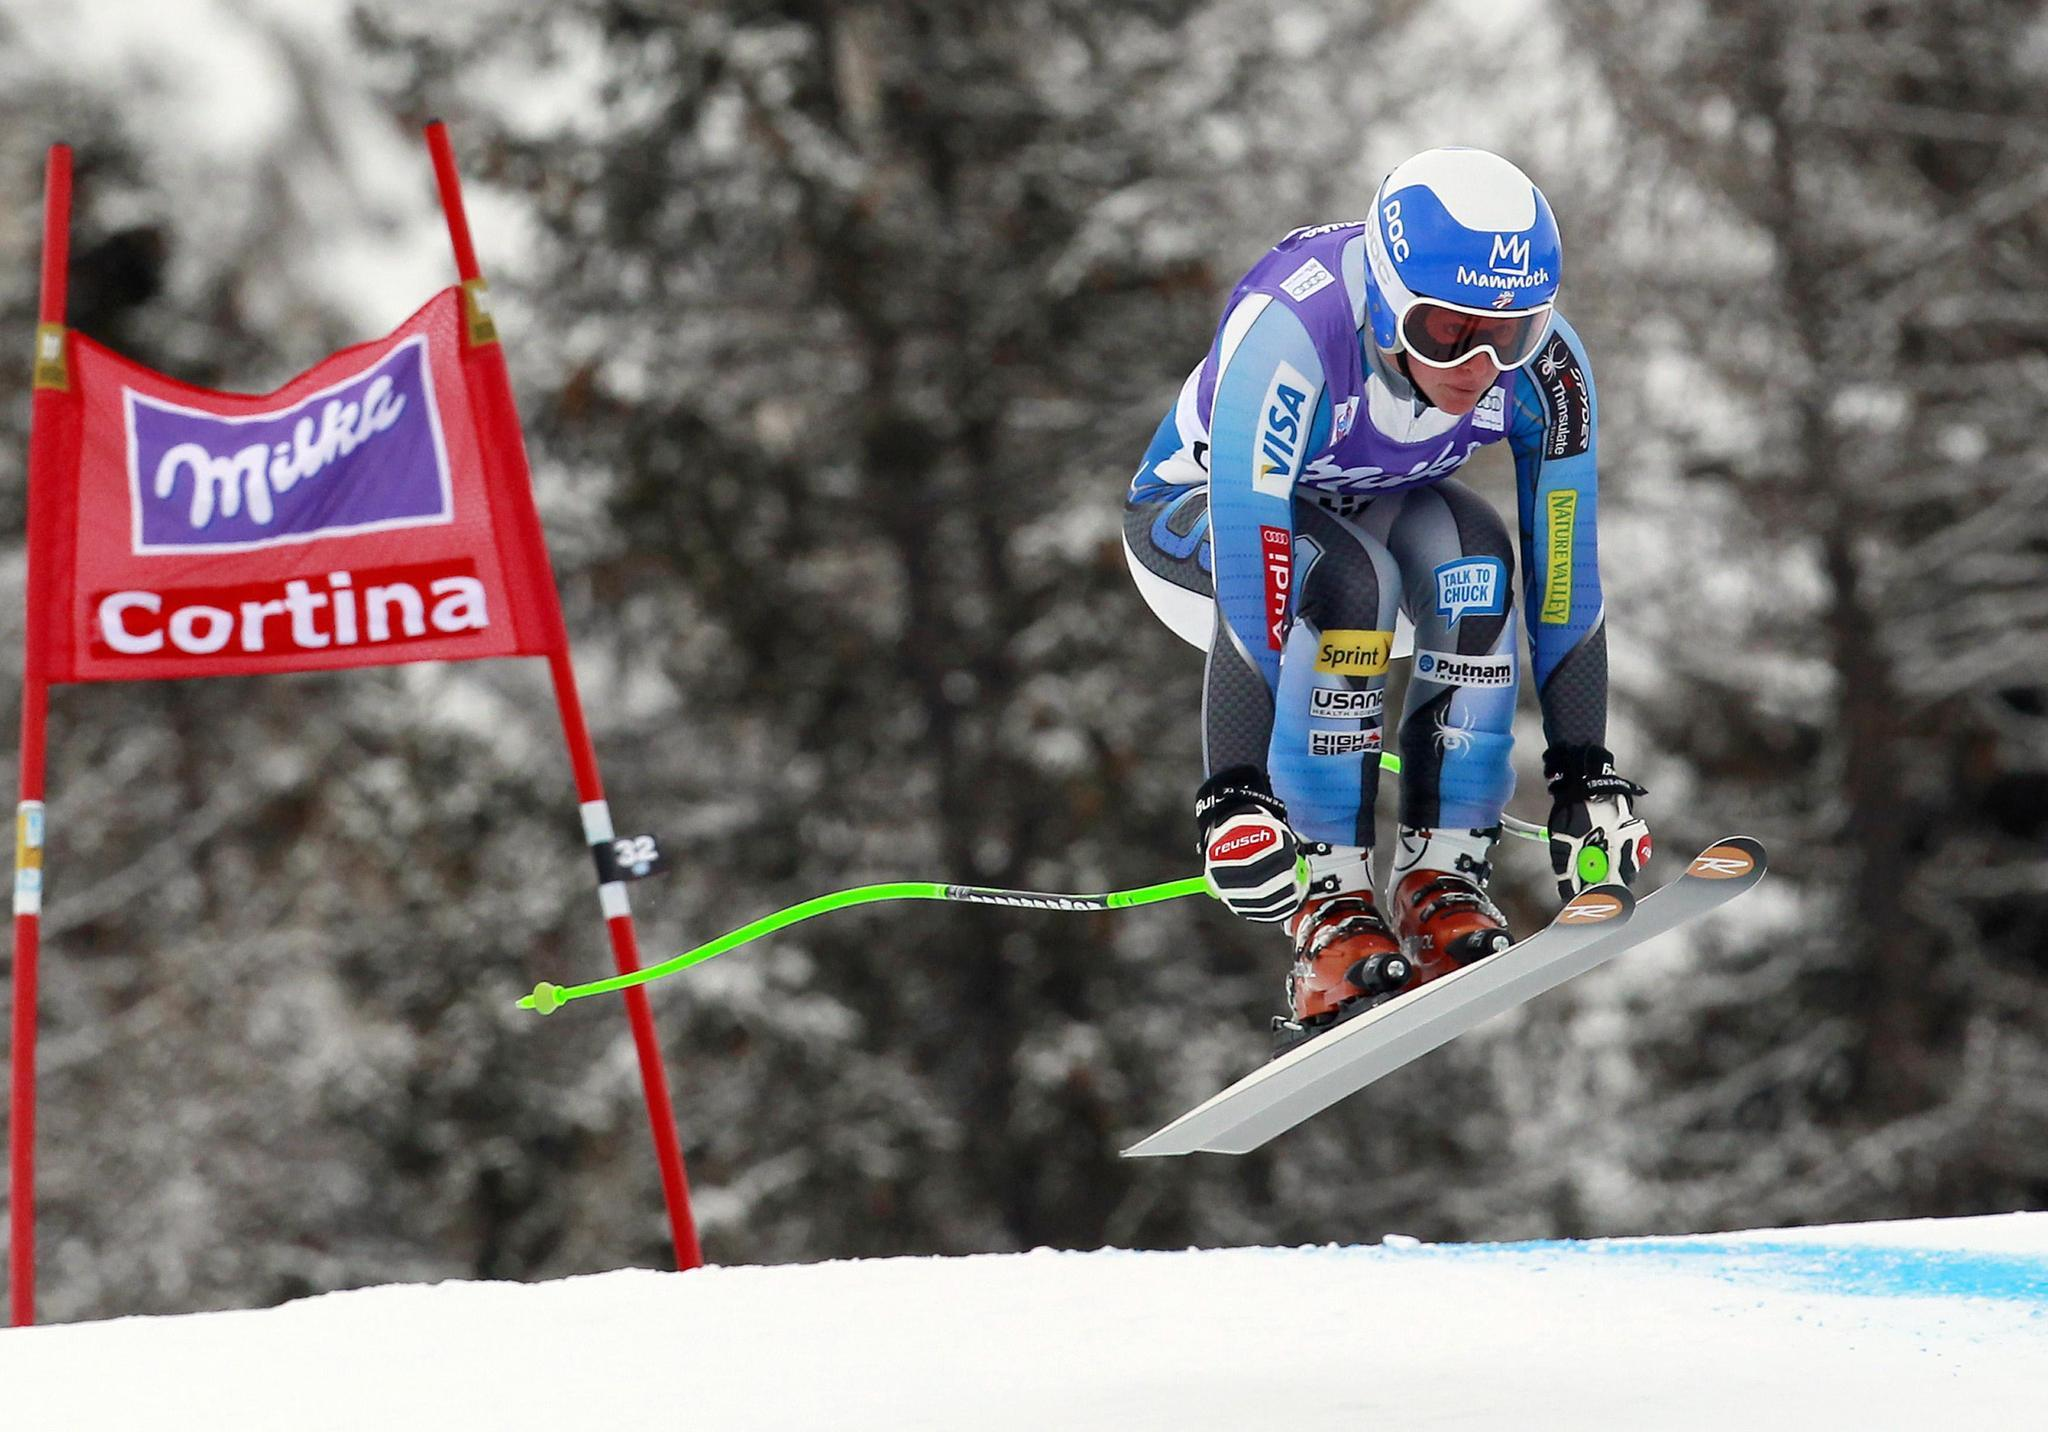 Stacey Cook clears a gate in Cortina D'Ampezzo. (Alessandro Garofalo/Reuters Photo)